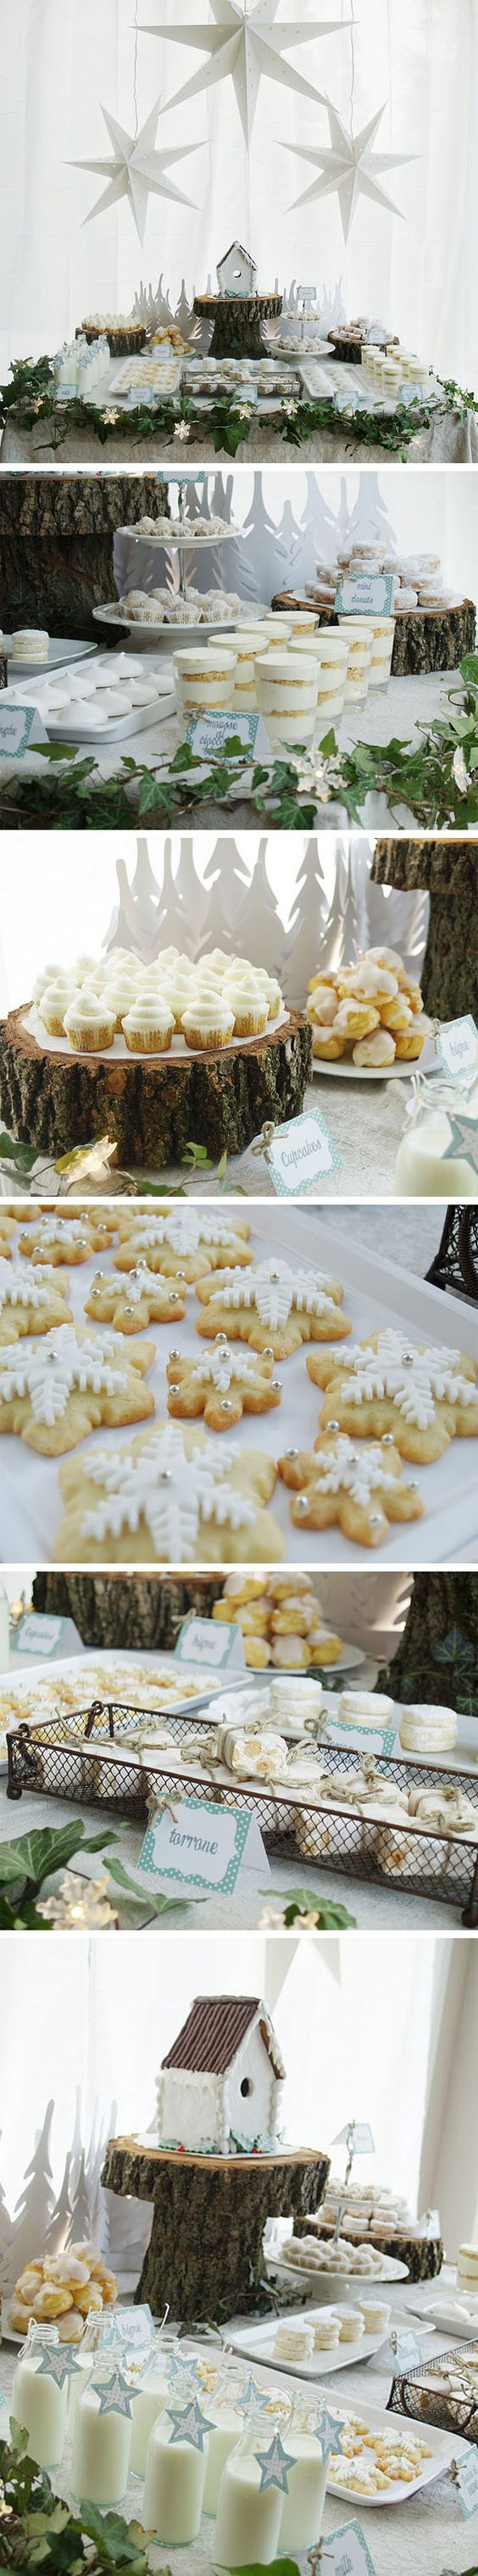 Winter Wonderland Holiday Dessert Table// Boutique Bridal Party : Winter Wedding Inspiration #partyonbrides  // https://www.facebook.com/BoutiqueBridalParty